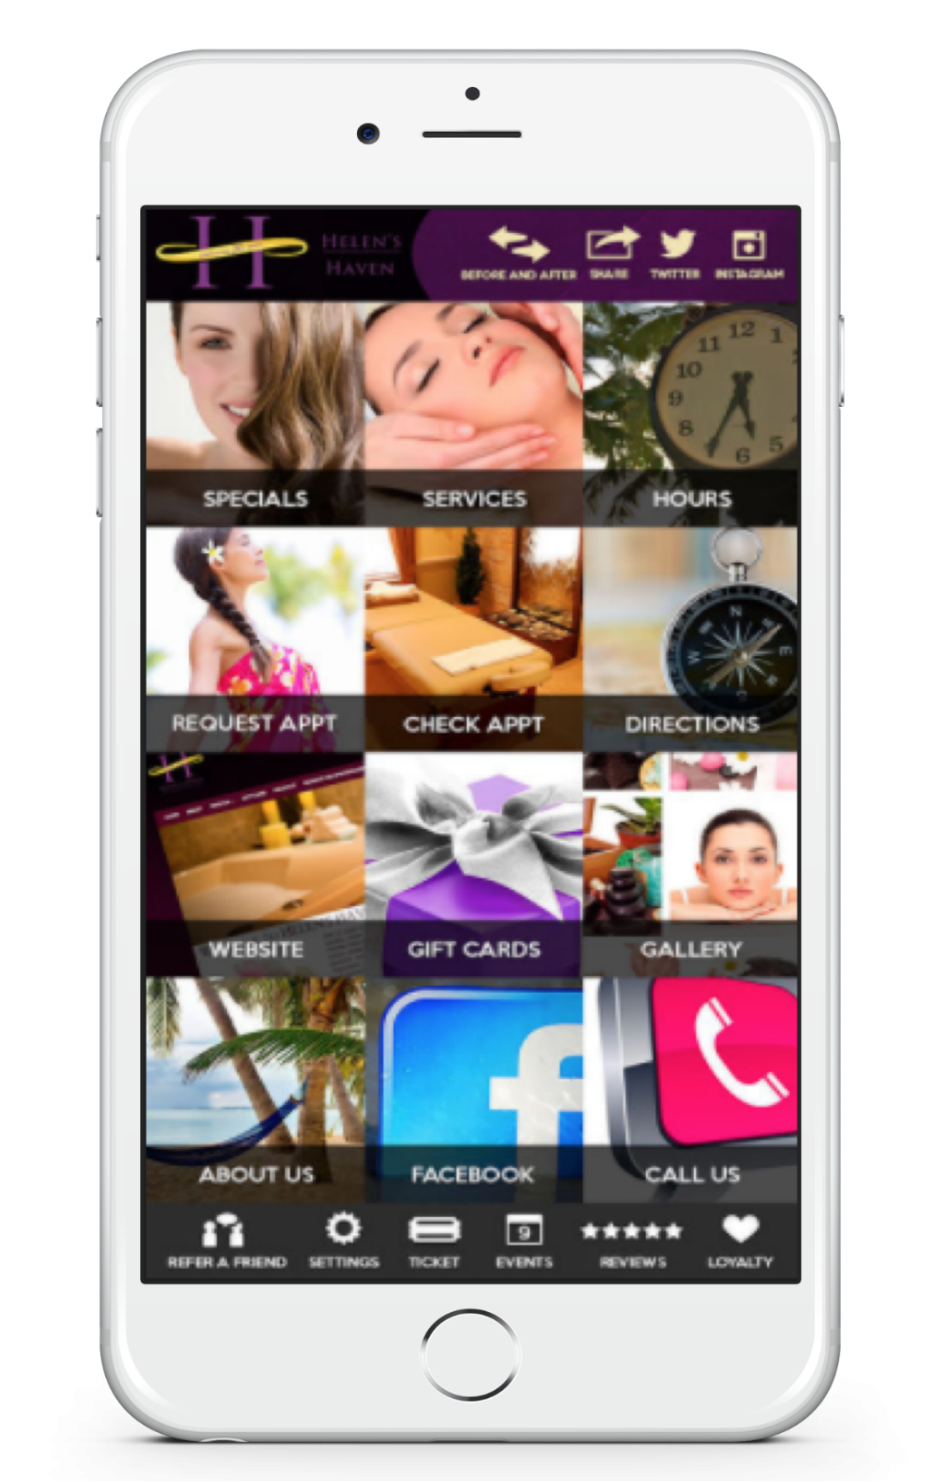 Simplify Your Wellness Plan with the Helen's Haven Mobile App